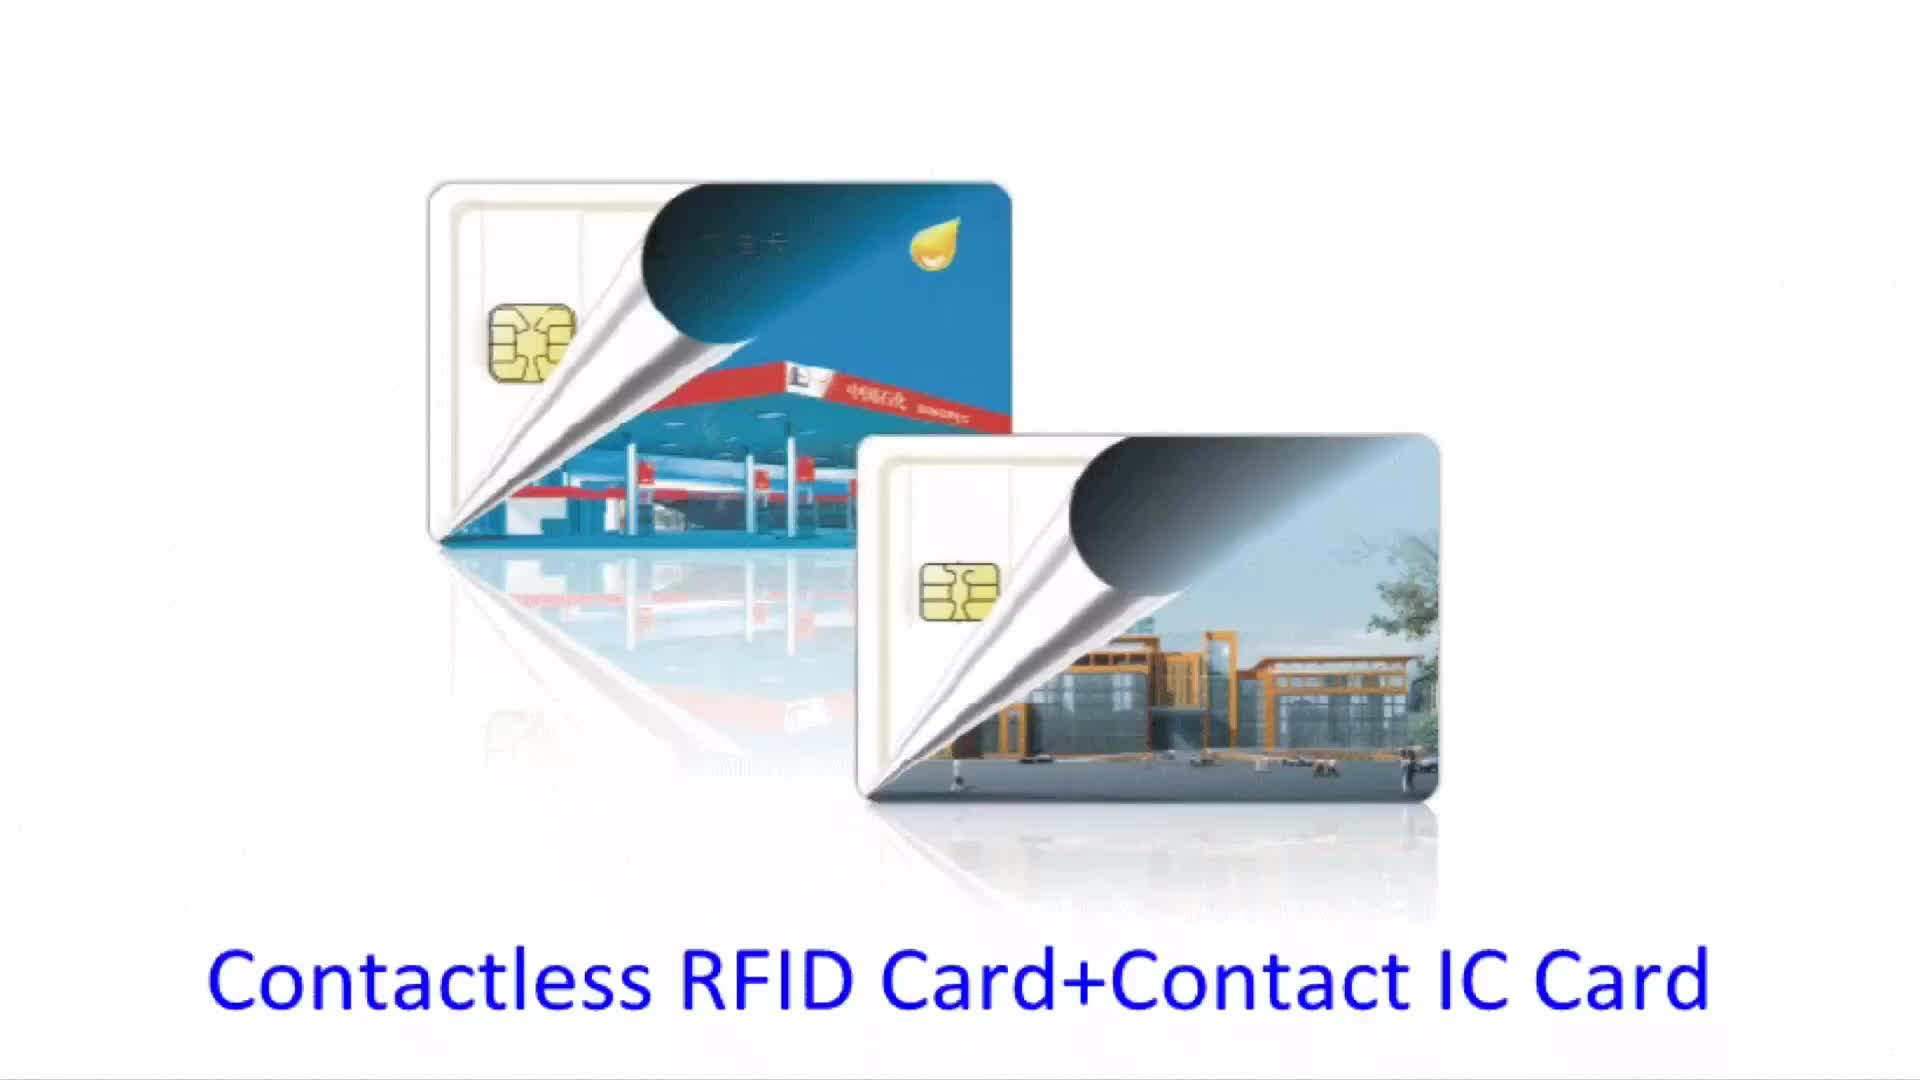 Xinyetong 2019 High quality LF T5577 contactless RFID smart cards for hotel room key card